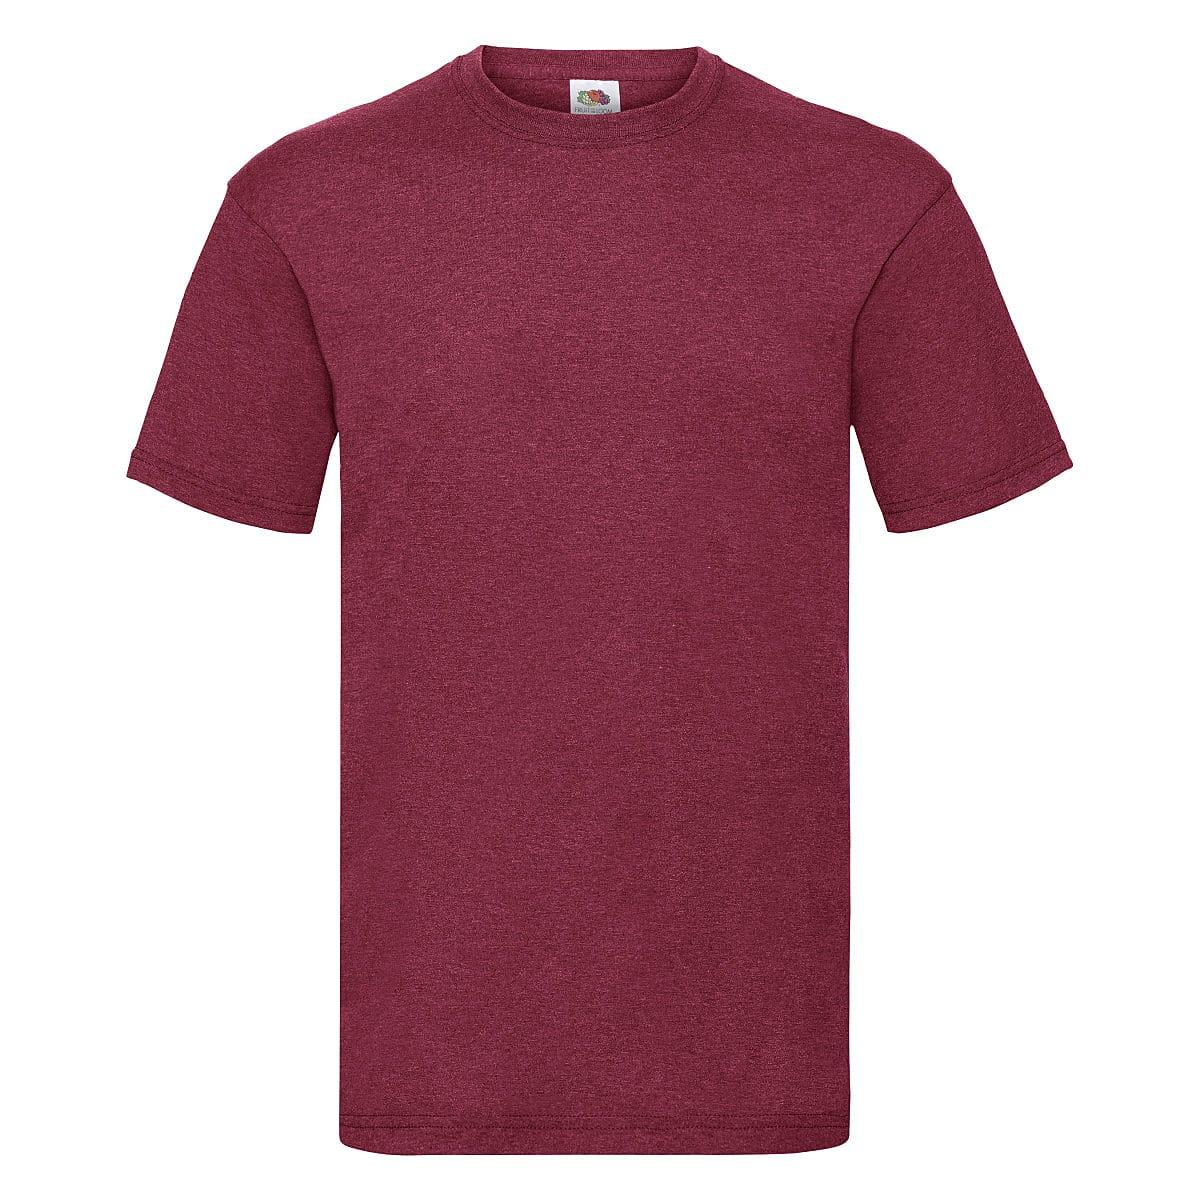 Fruit Of The Loom Valueweight T-Shirt in Vintage Heather Red (Product Code: 61036)